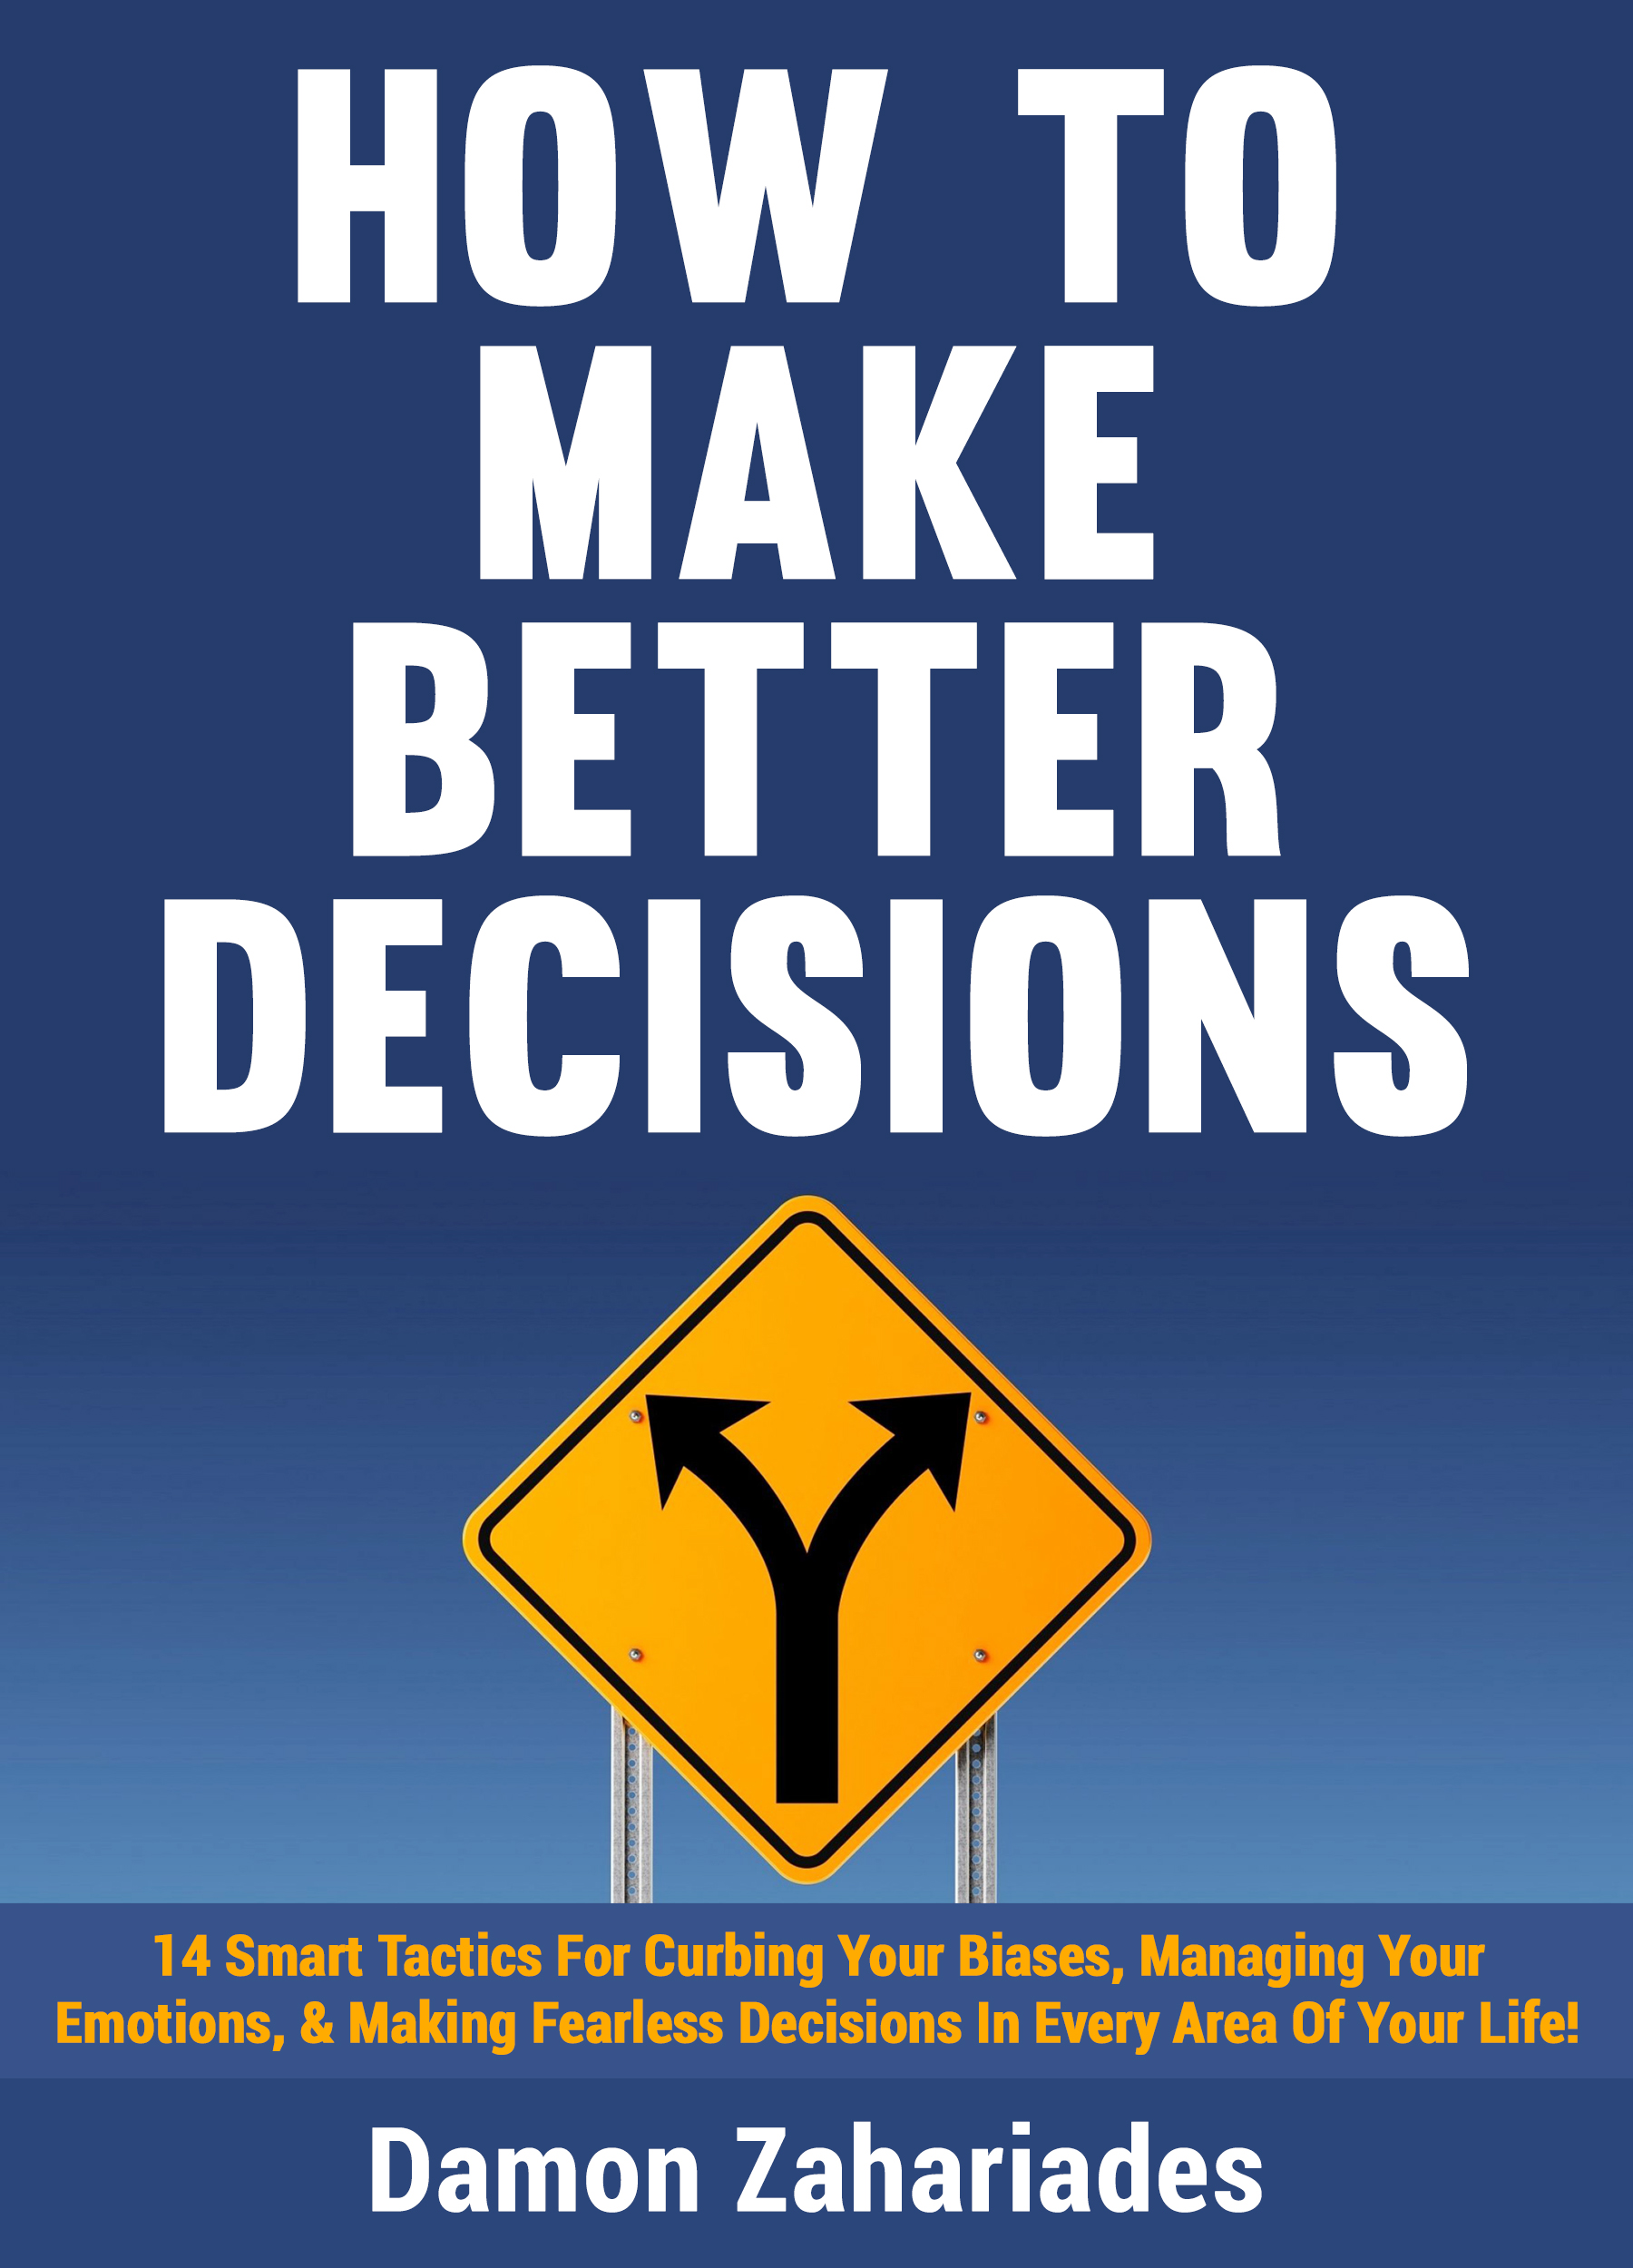 How to Make Better Decisions: 14 Smart Tactics for Curbing Your Biases, Managing Your Emotions, And Making Fearless Decisions in Every Area of Your Life!